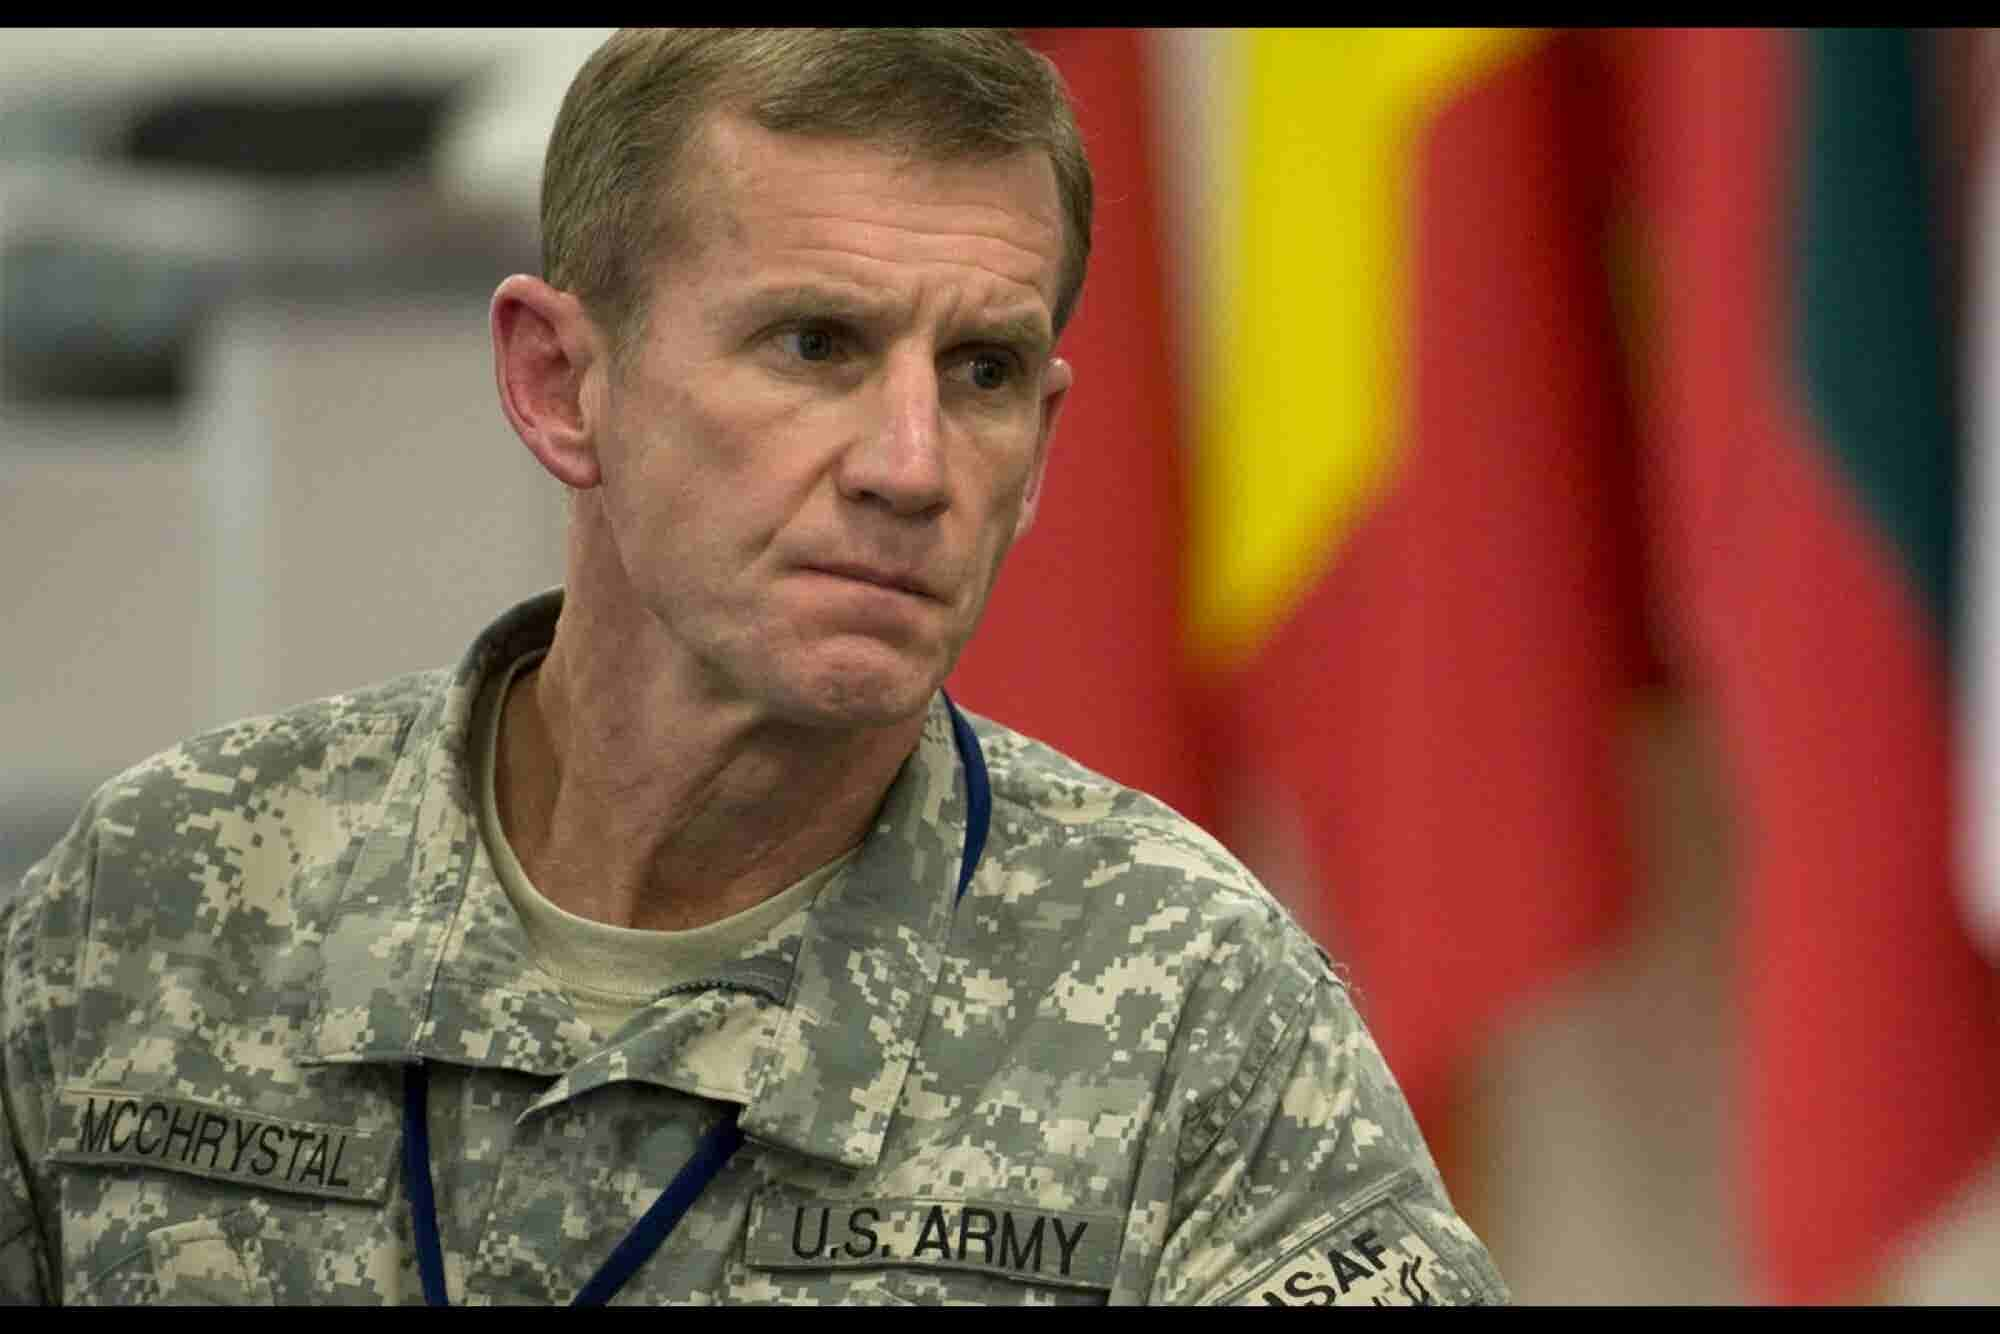 Gen. Stanley McChrystal: Successful Companies Raise Expectations Literally Every Day (VIDEO)